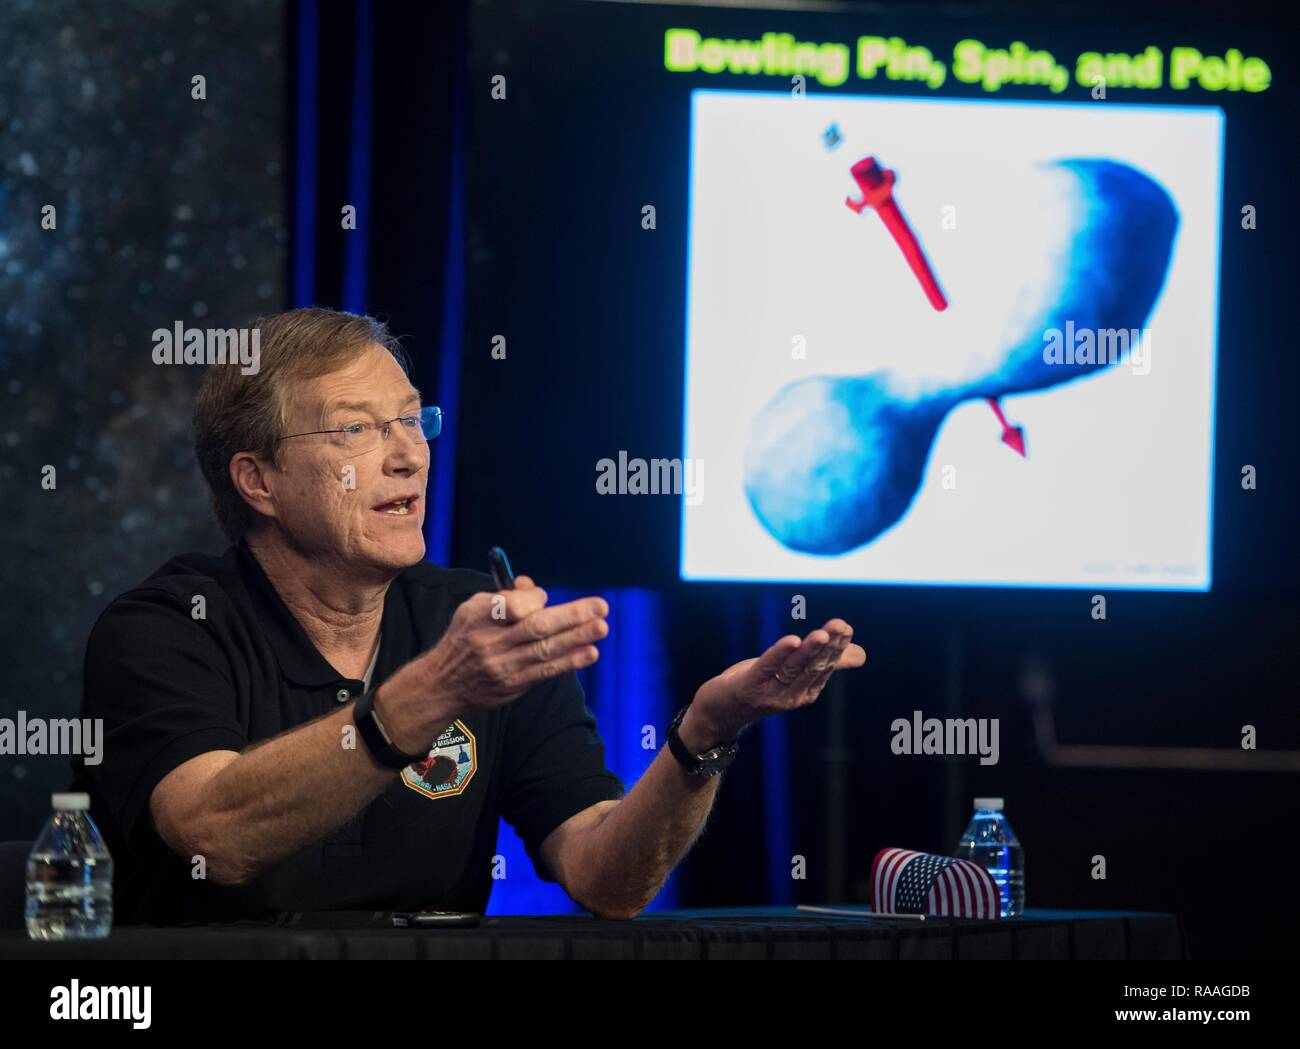 New Horizons project scientist Hal Weaver of the Johns Hopkins University Applied Physics Laboratory during a press conference following the successful flyby of Ultima Thule by the New Horizon spacecraft at Johns Hopkins University Applied Physics Laboratory January 1, 2019 in Laurel, Maryland. The flyby by the space probe occurred 6.5bn km (4bn miles) away, making it the most distant ever exploration of an object in our Solar System. - Stock Image